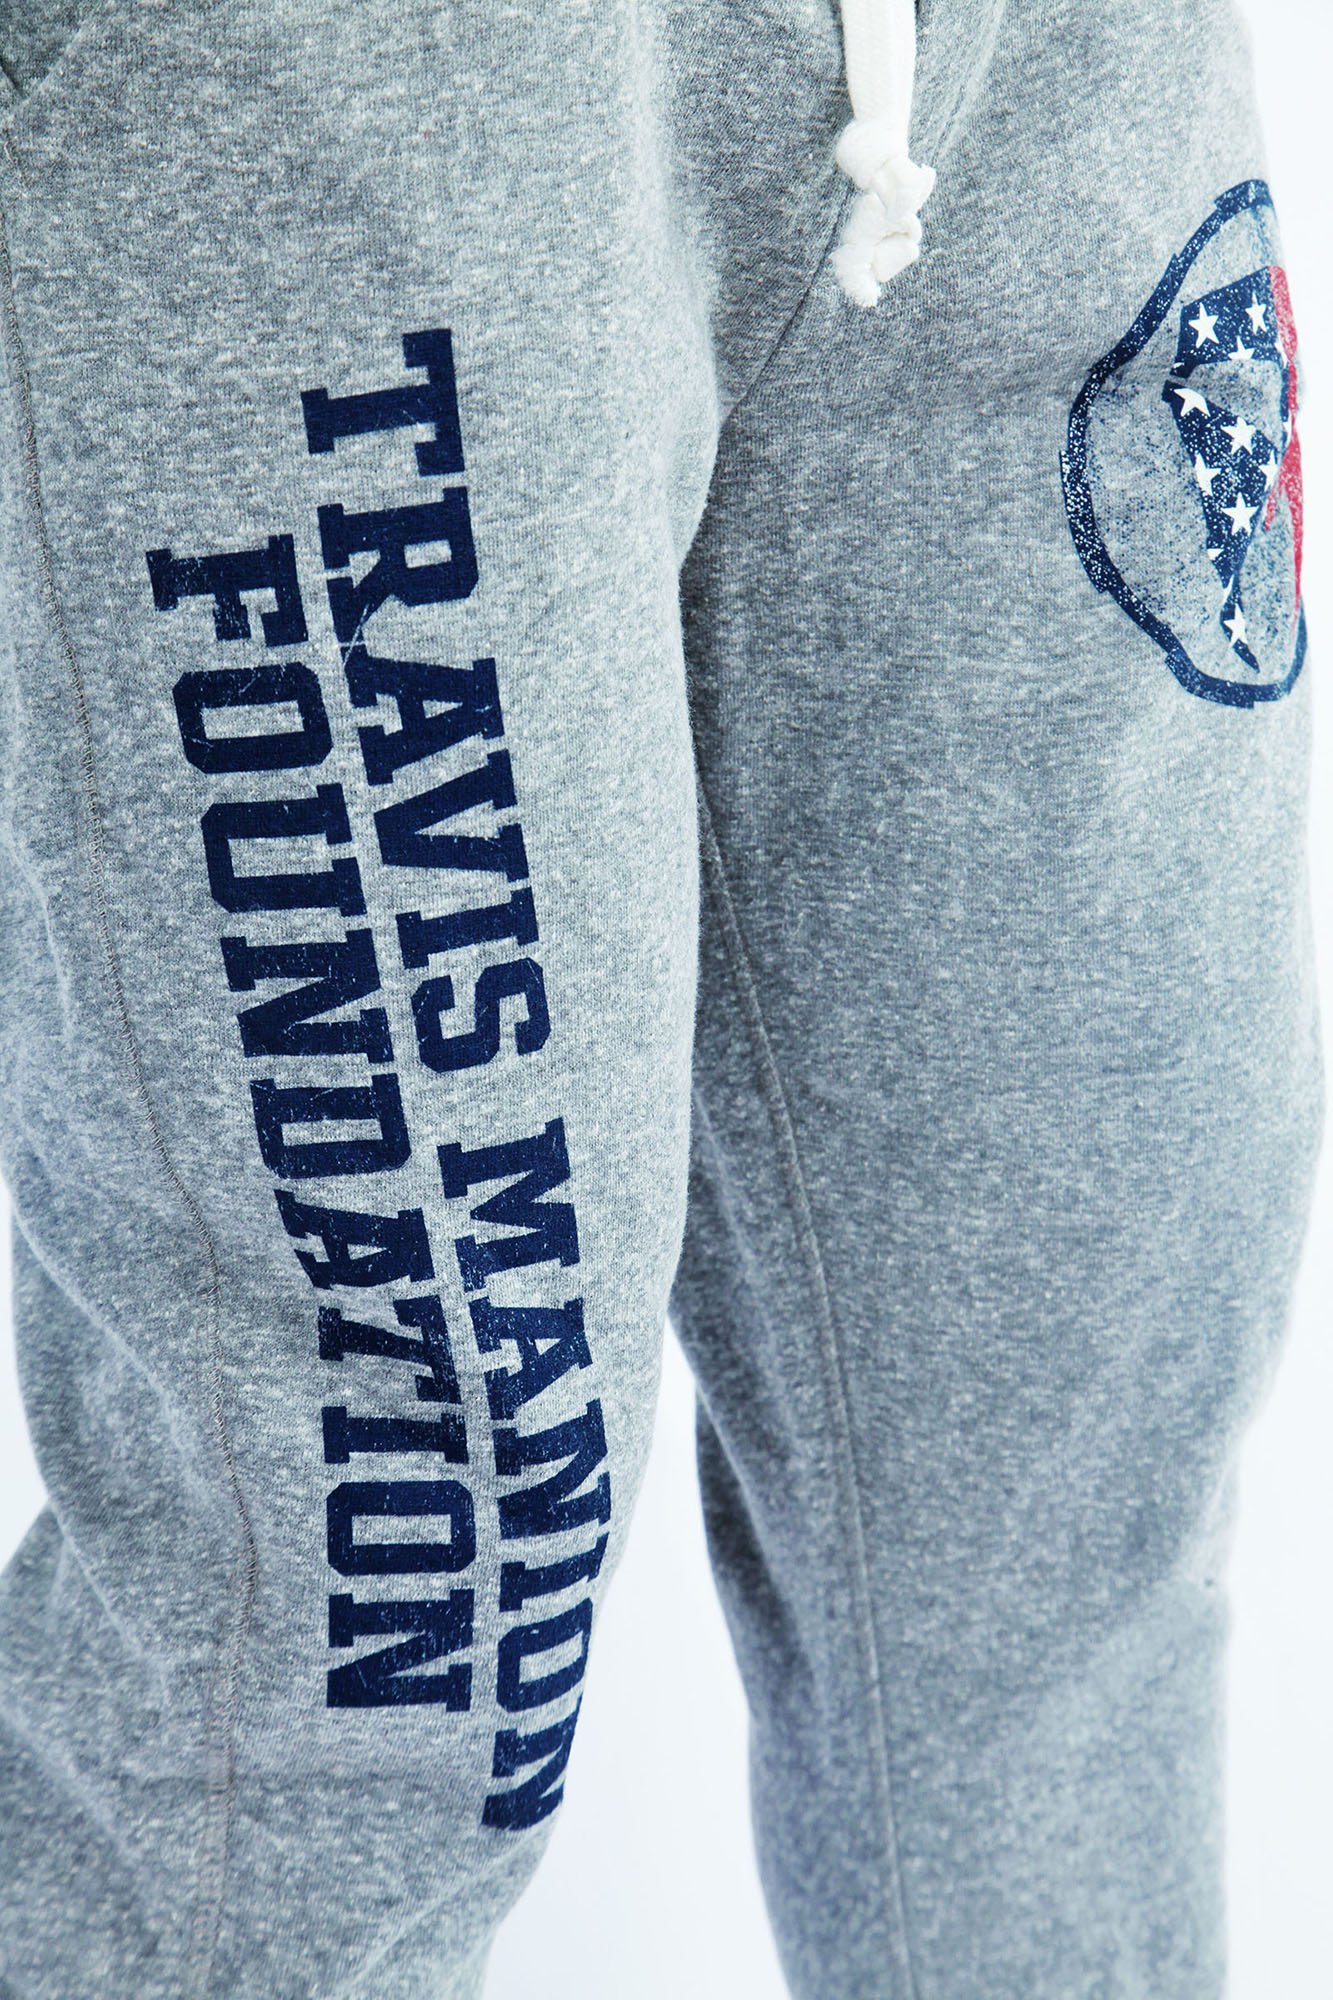 TMF Men's Collegiate Joggers